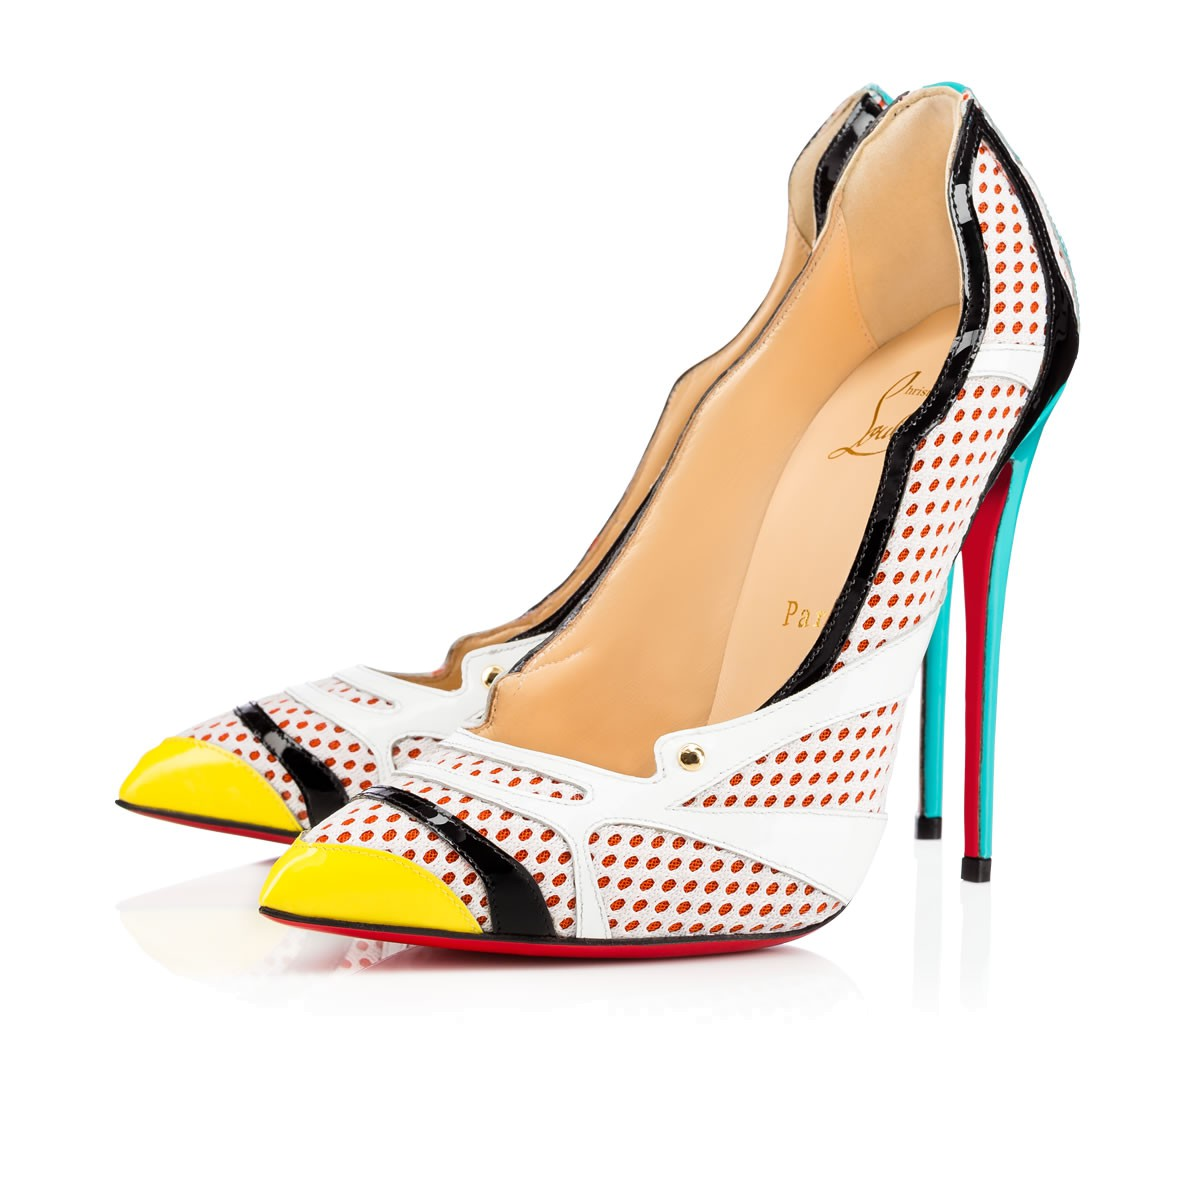 Tronetta 120 Version Multi Patent Leather - Women Shoes - Christian Louboutin